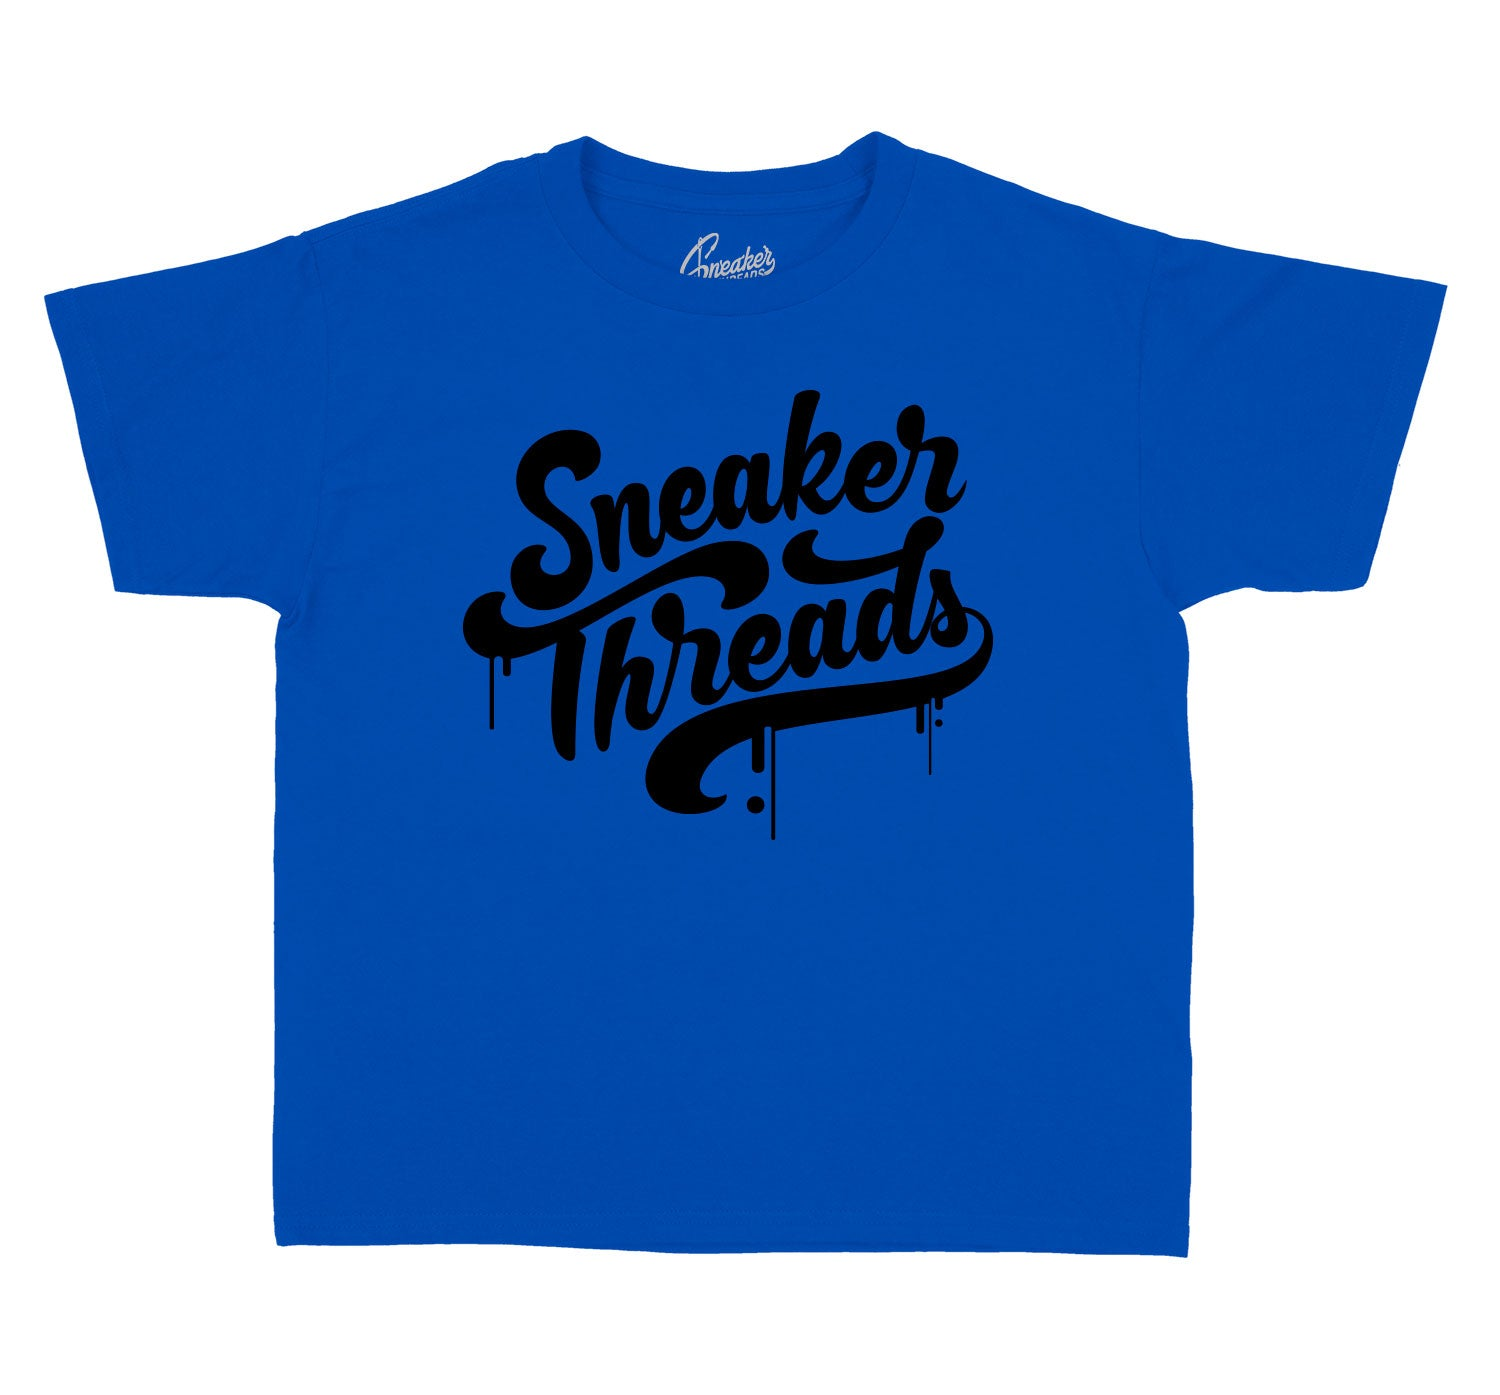 All Star 1996 foamposite sneaker matching kids t shirts